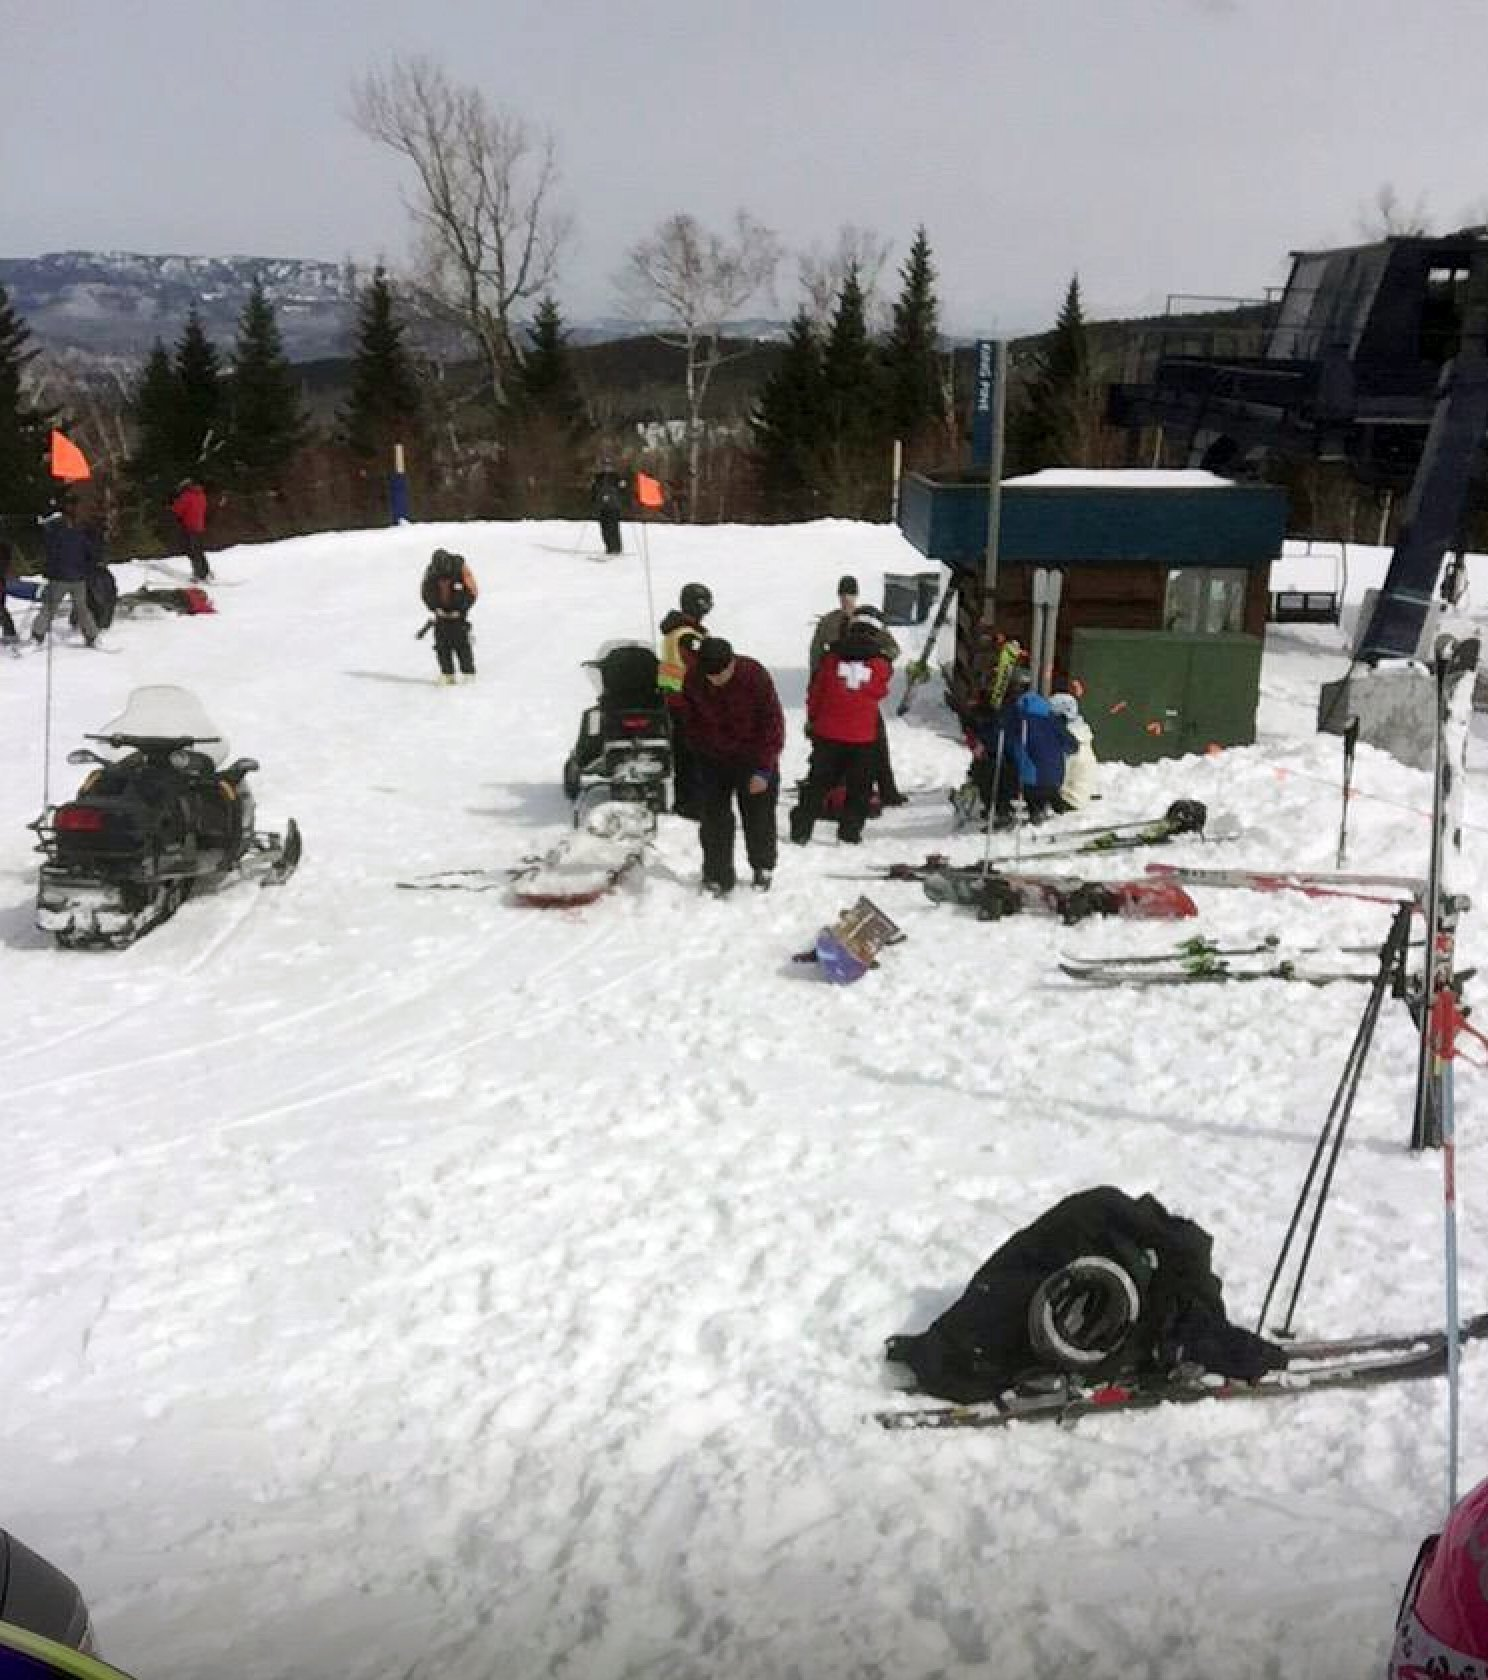 ski chair lift malfunction ikea poang chairs brake design flaw contributed to maine chairlift the san diego union tribune